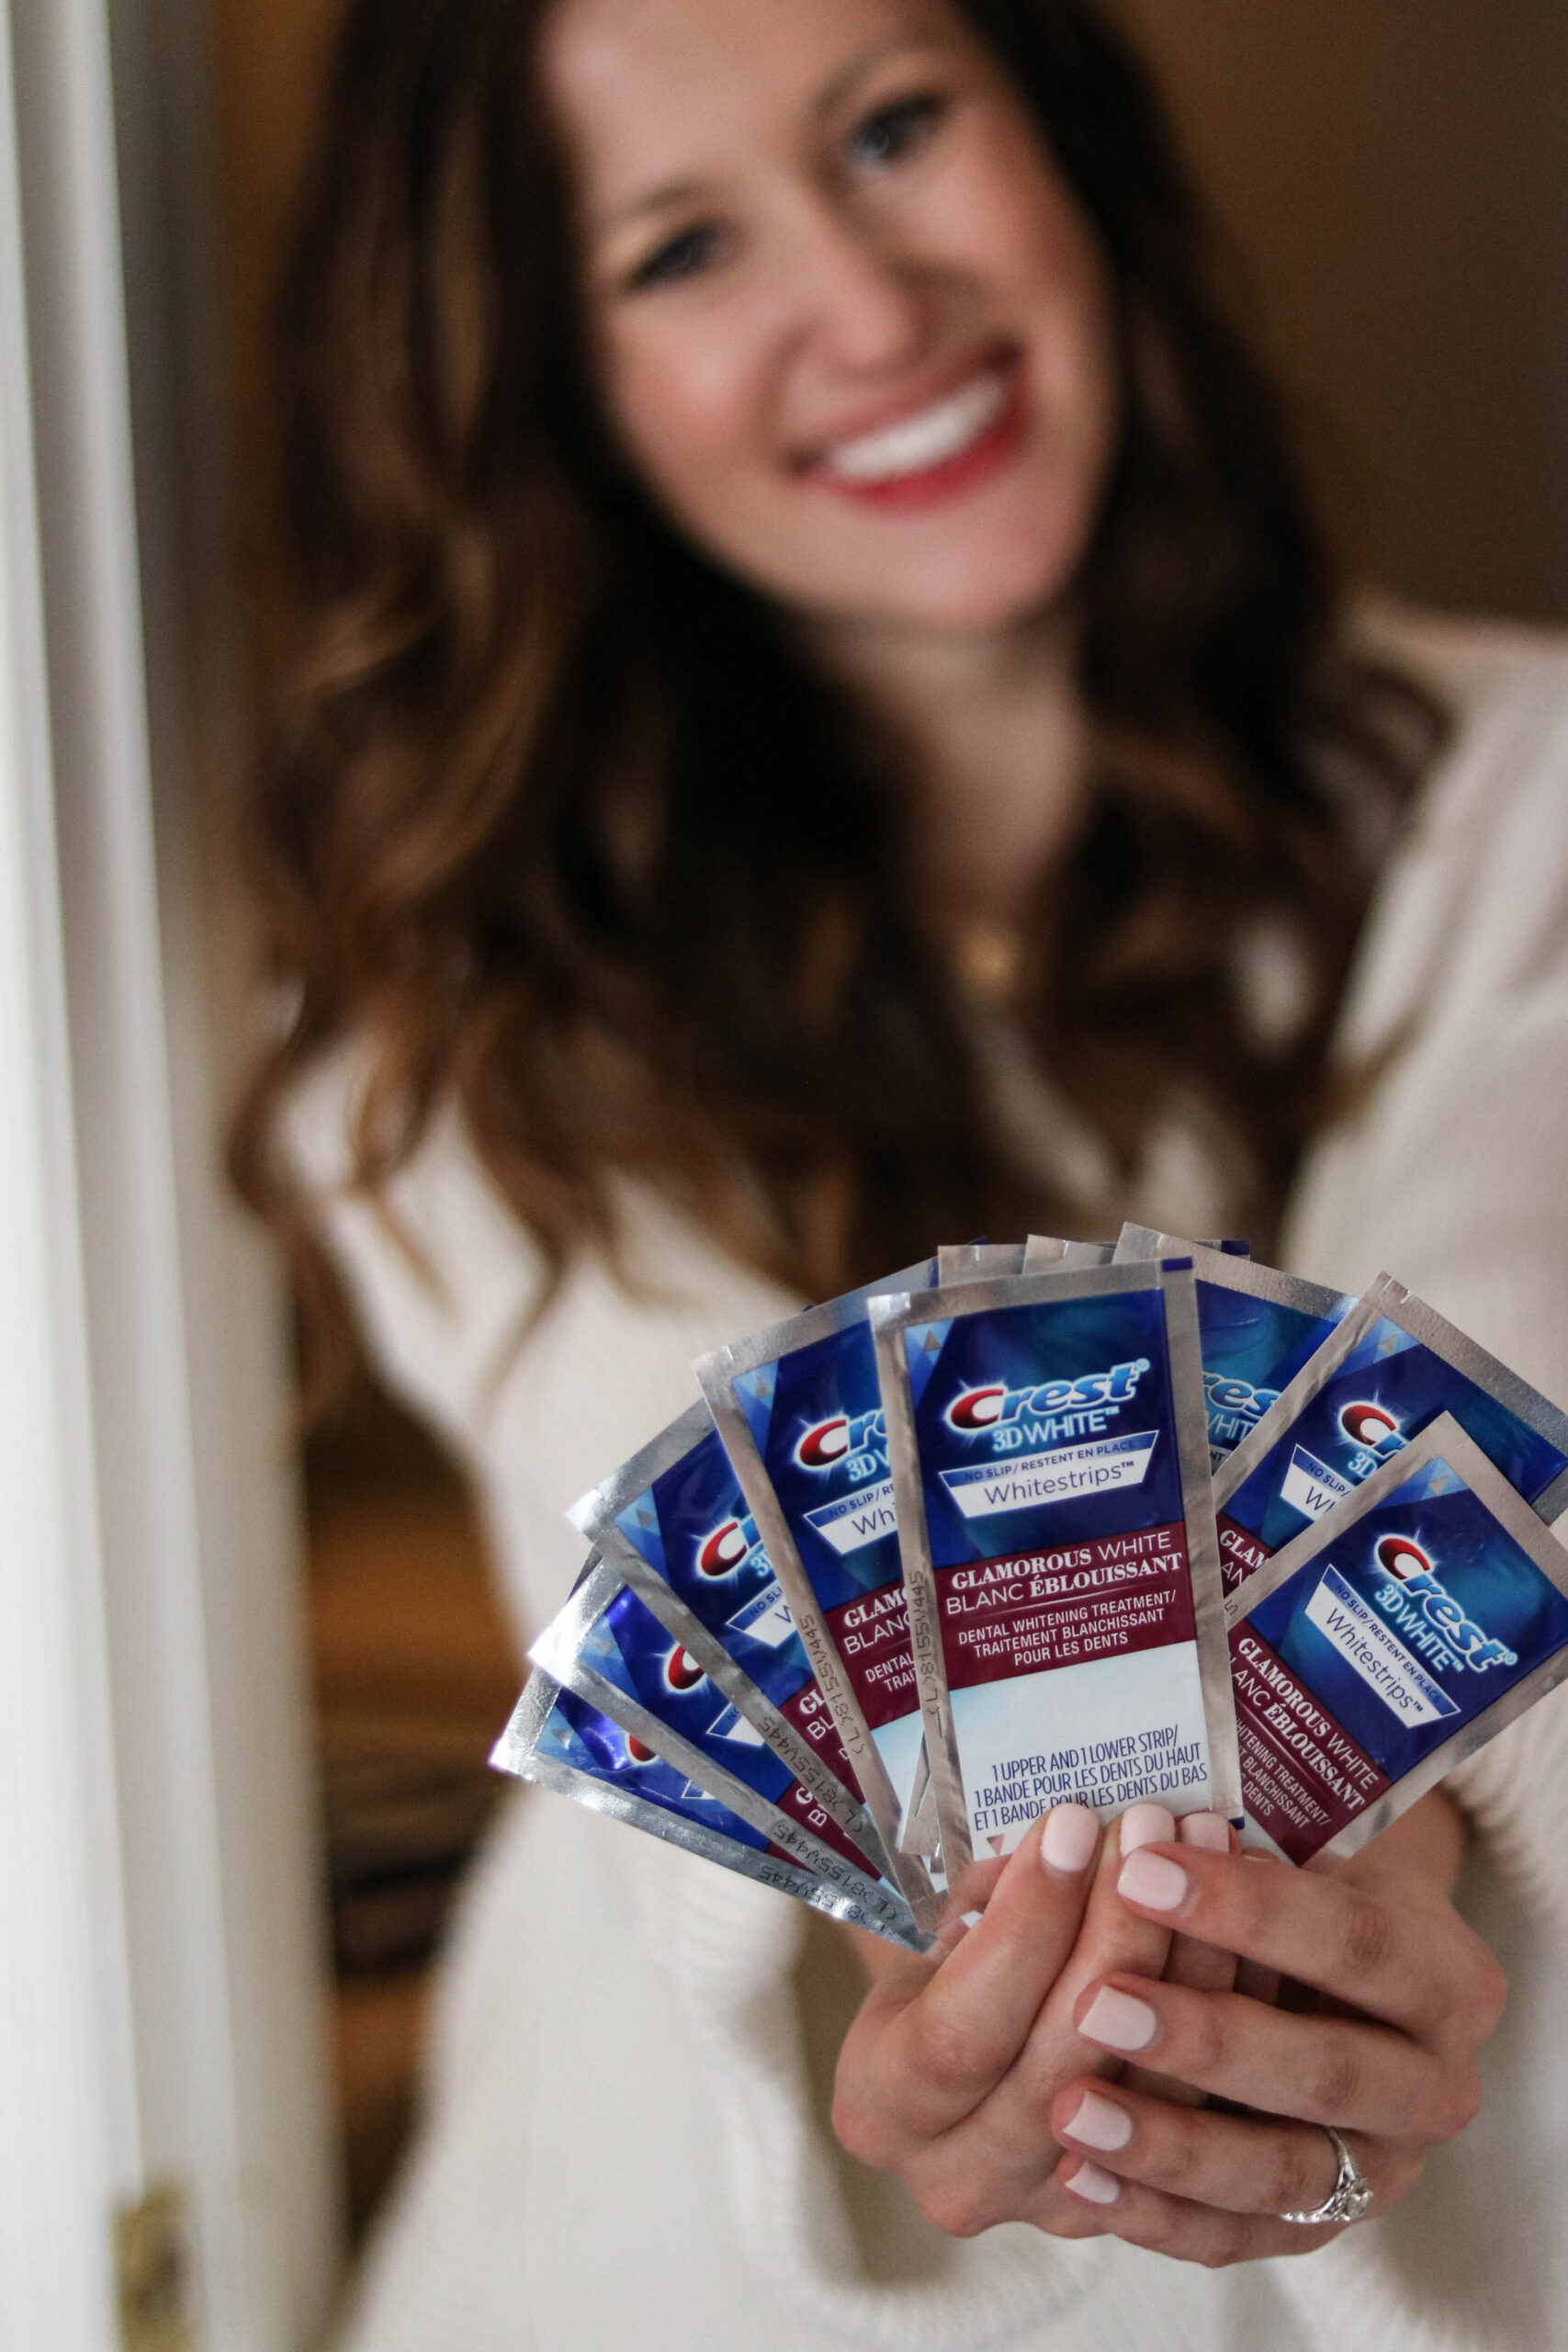 I wore Crest Whitestrips for 14 Days and here's what happened.